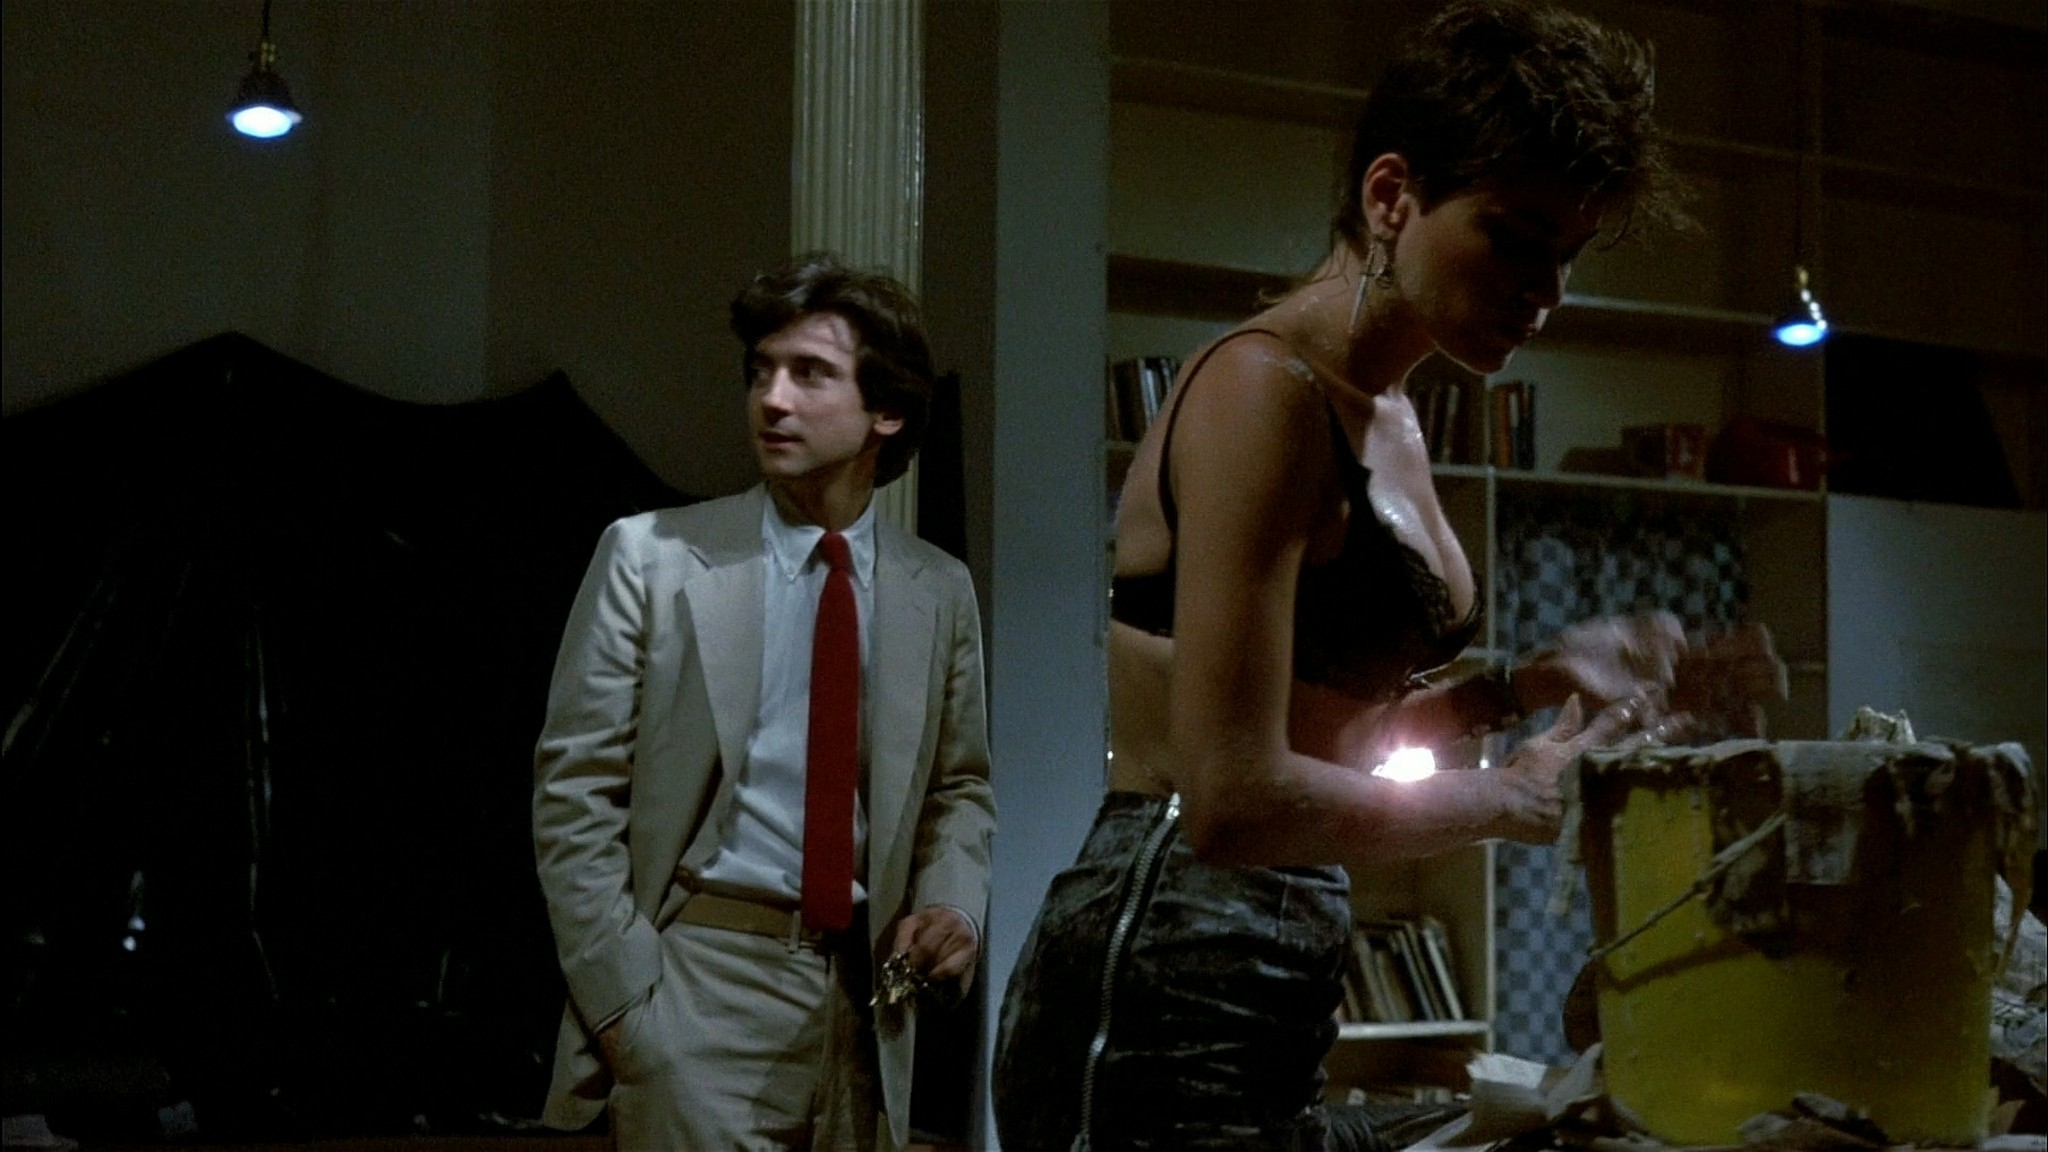 Linda Fiorentino nude Rosanna Arquette hot and sexy - After Hours (1985) HD 1080p BluRay (14)